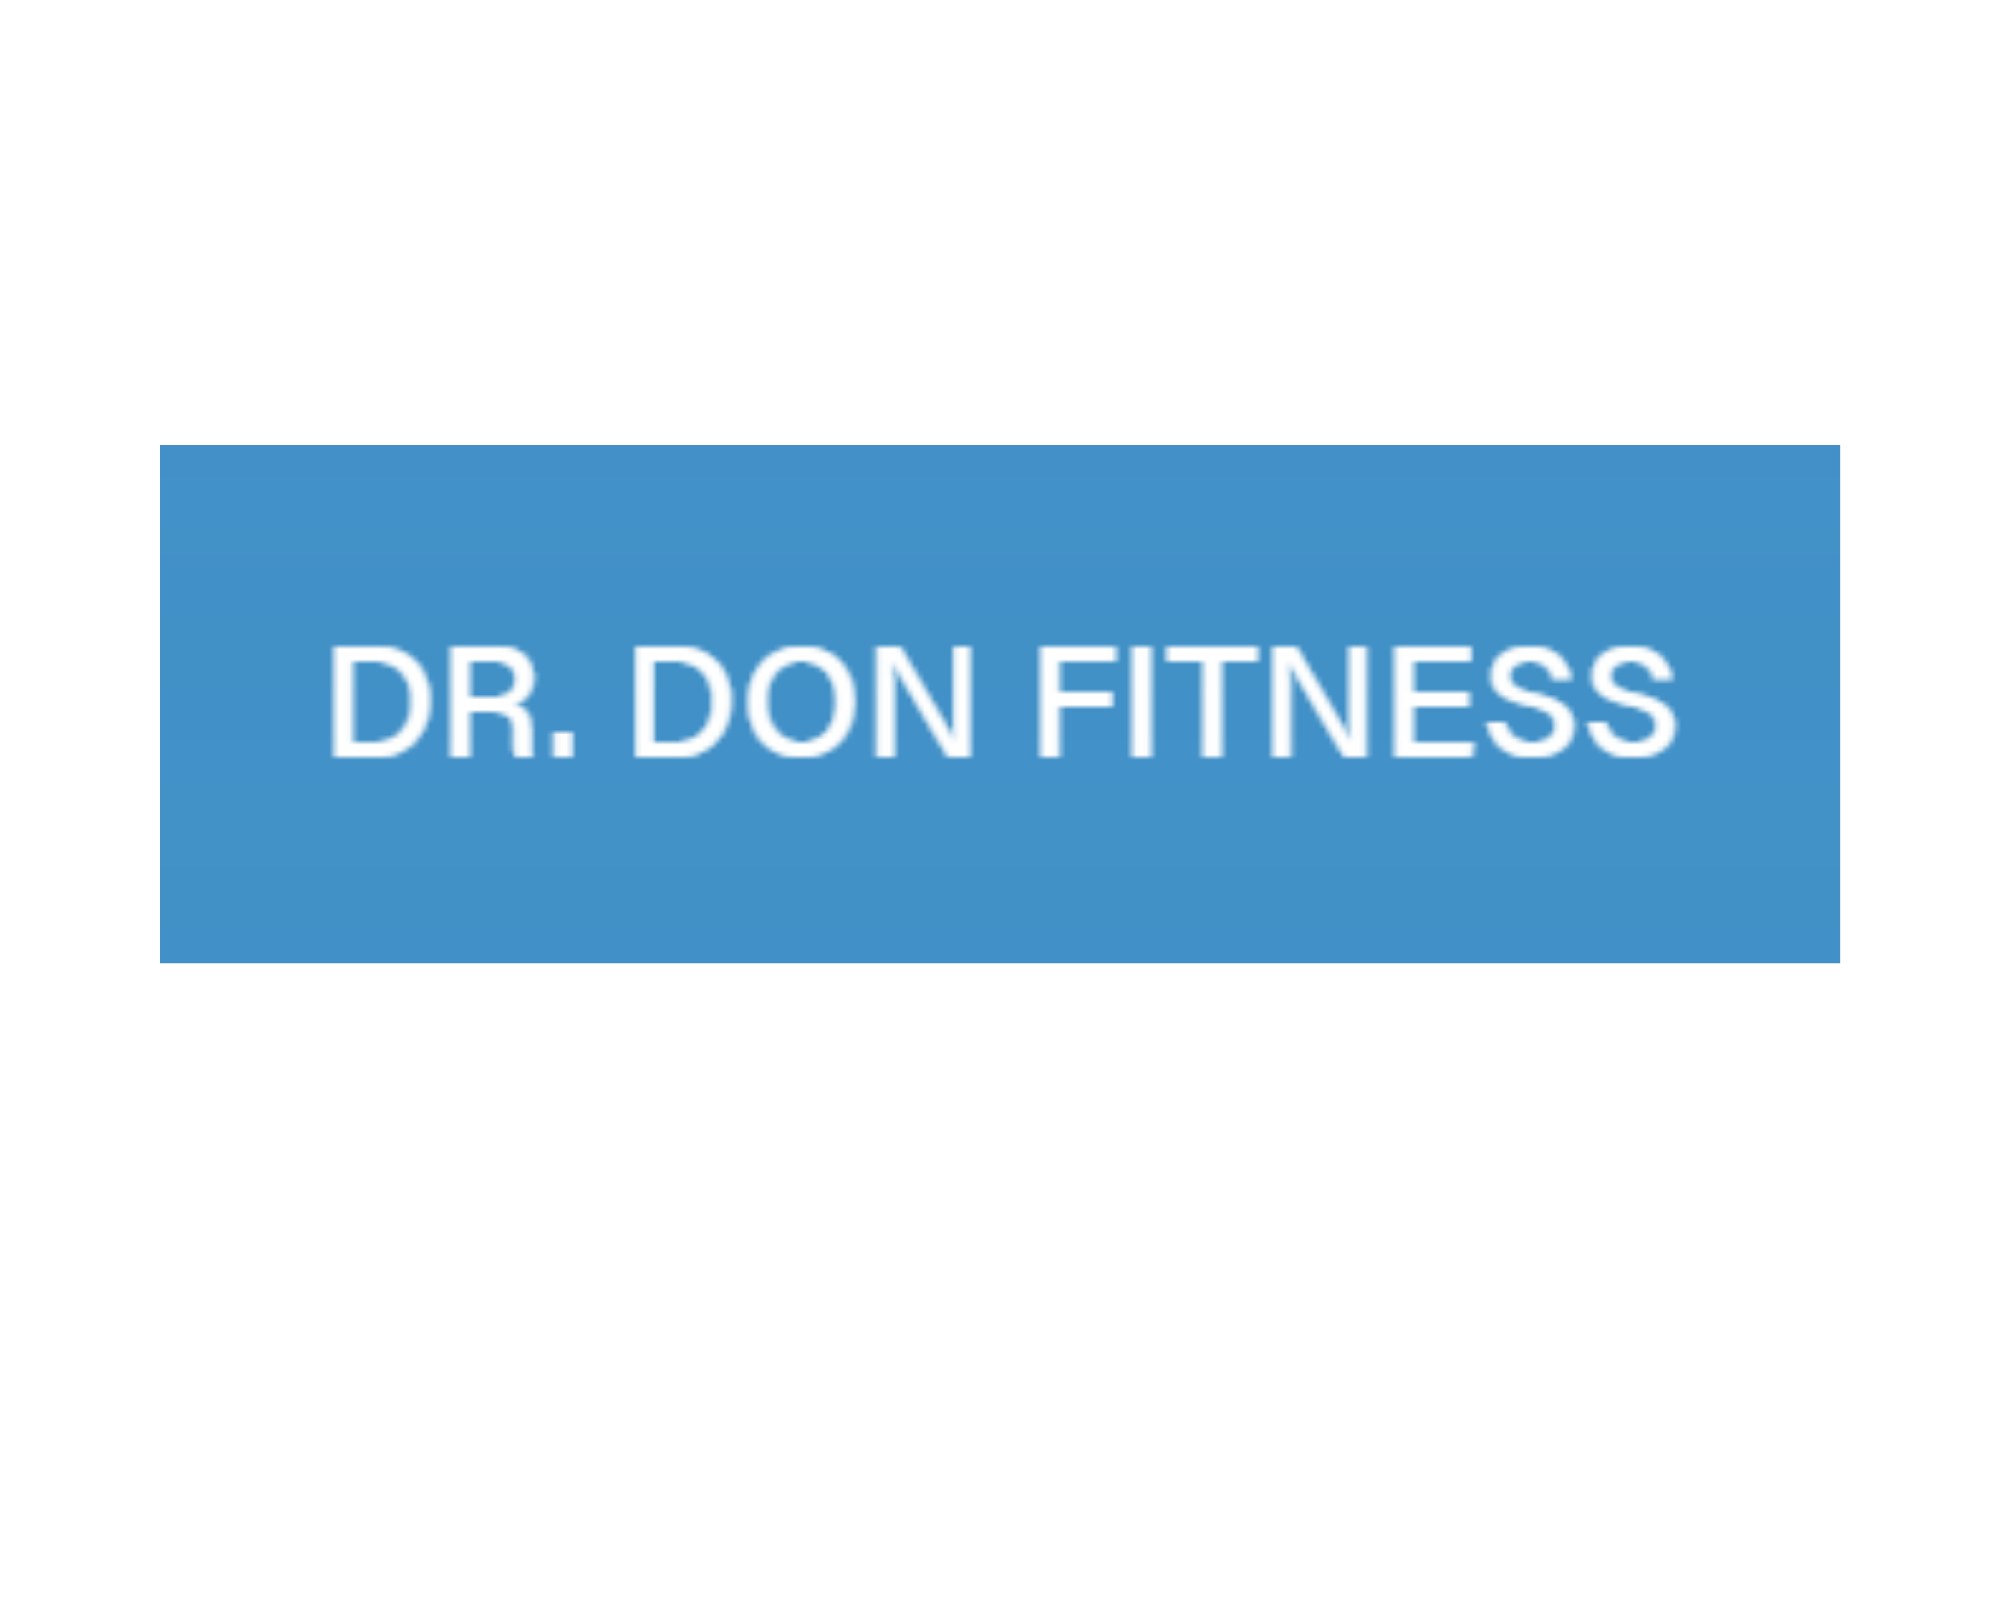 Dr. Don Fitness